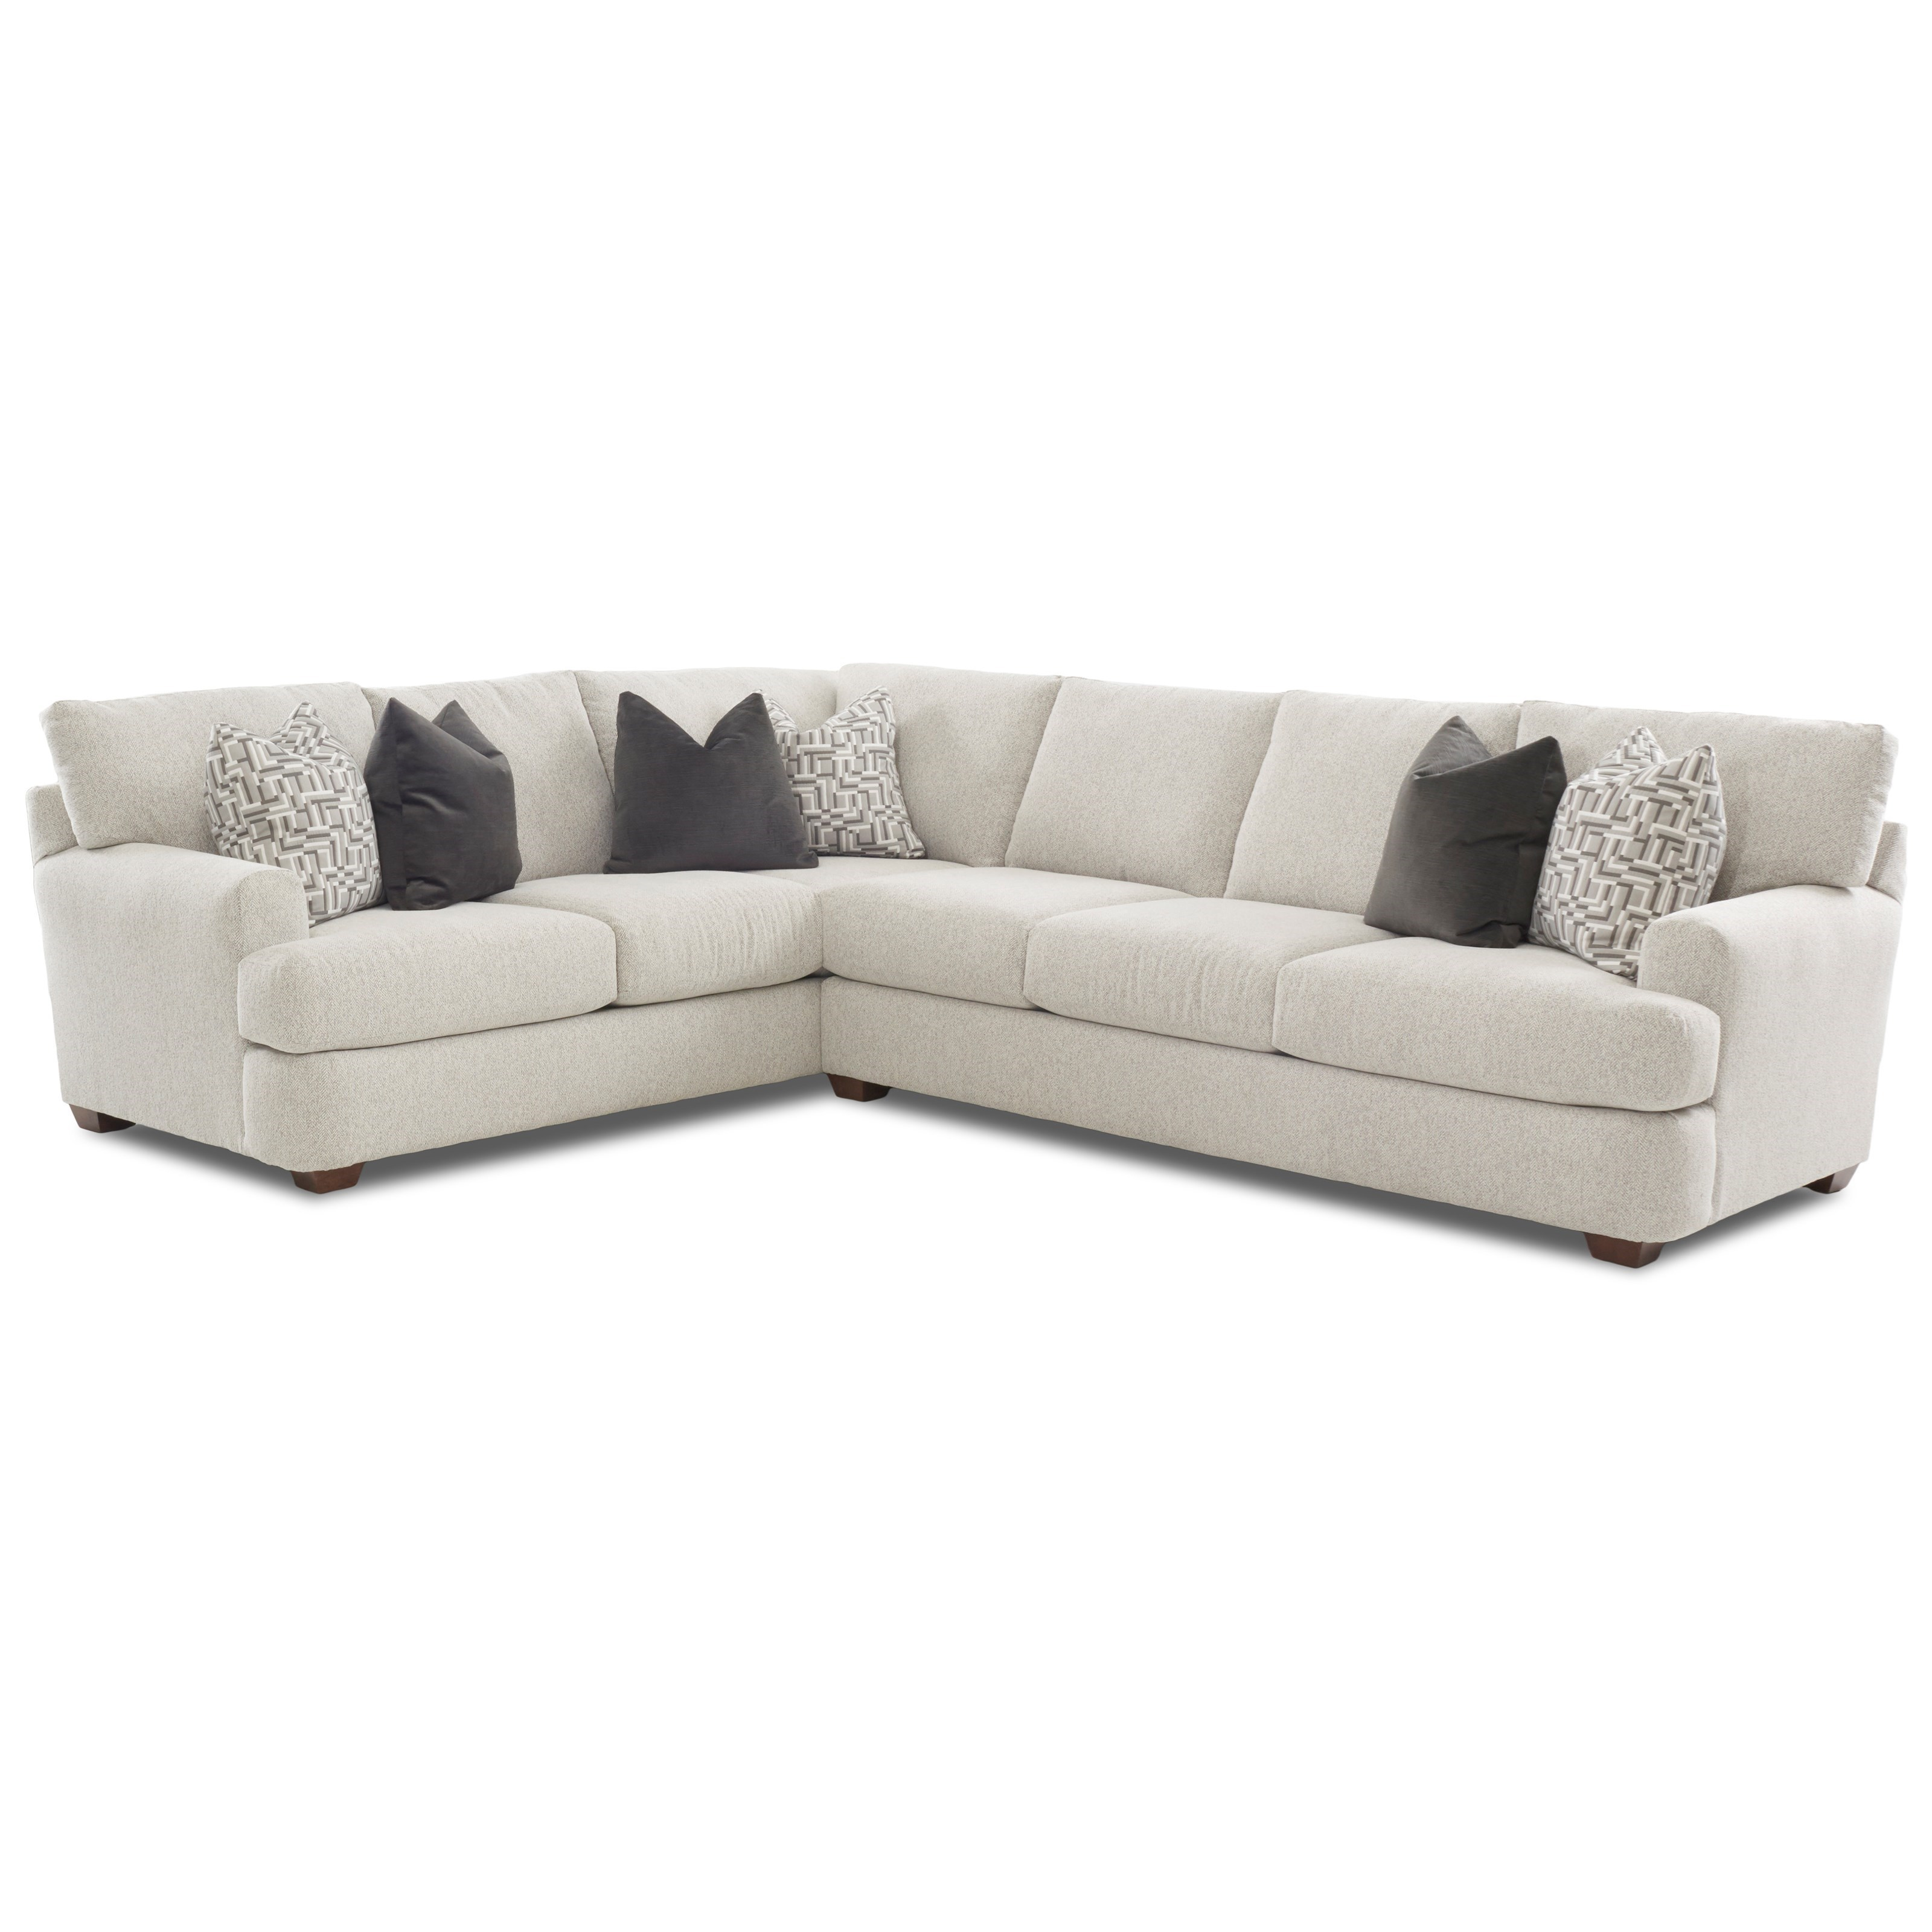 Klaussner Haynes Two Piece Sectional Sofa With LAF Corner Sofa